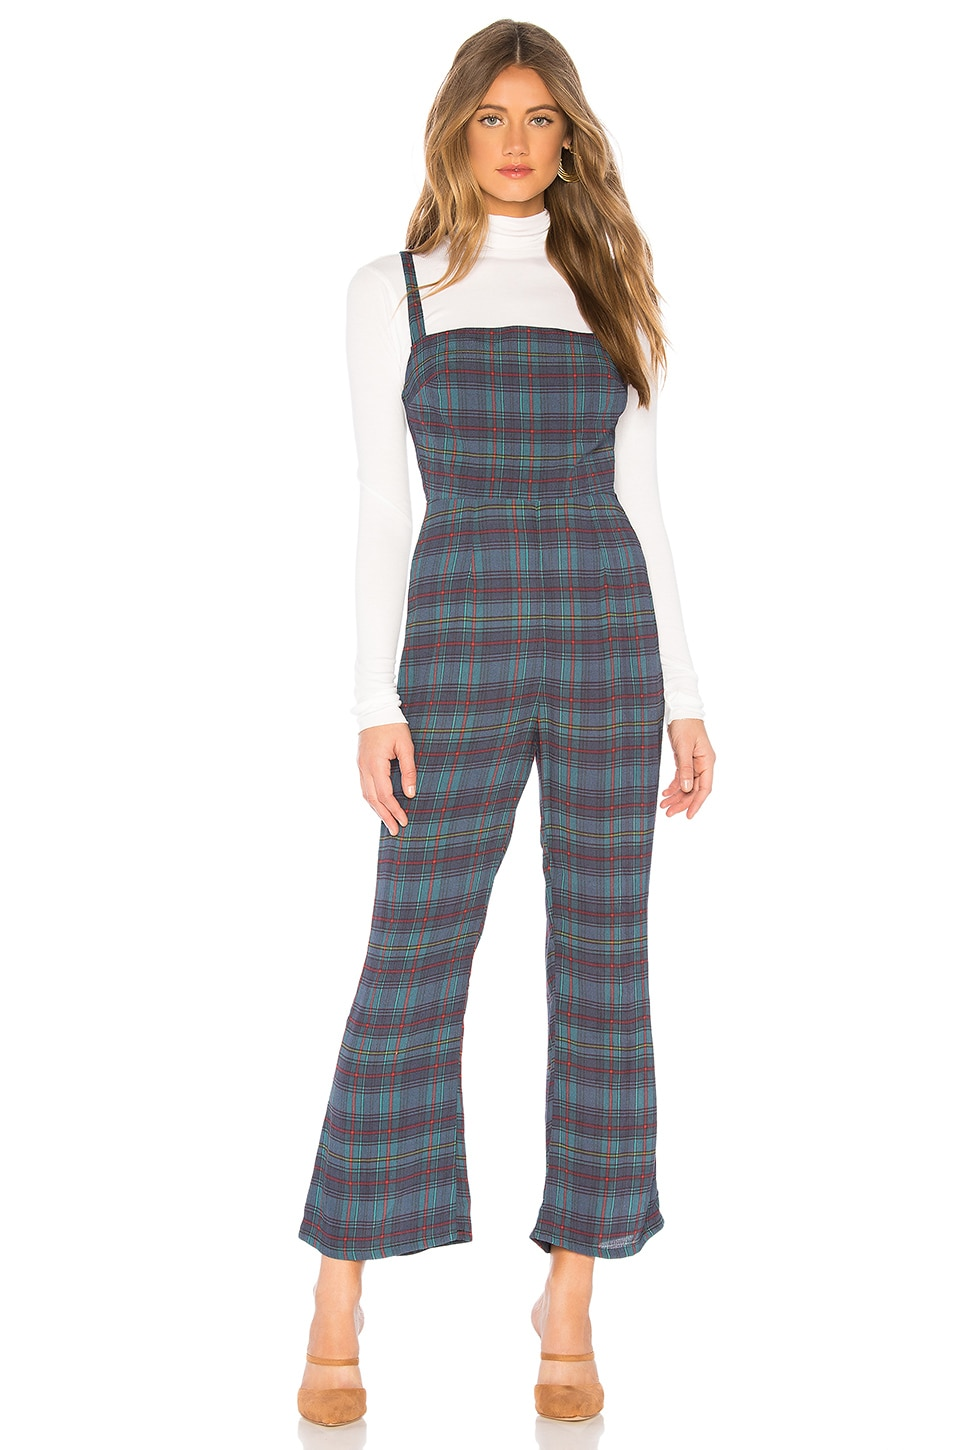 FLYNN SKYE X REVOLVE Lexi Jumpsuit in Blue Plaid